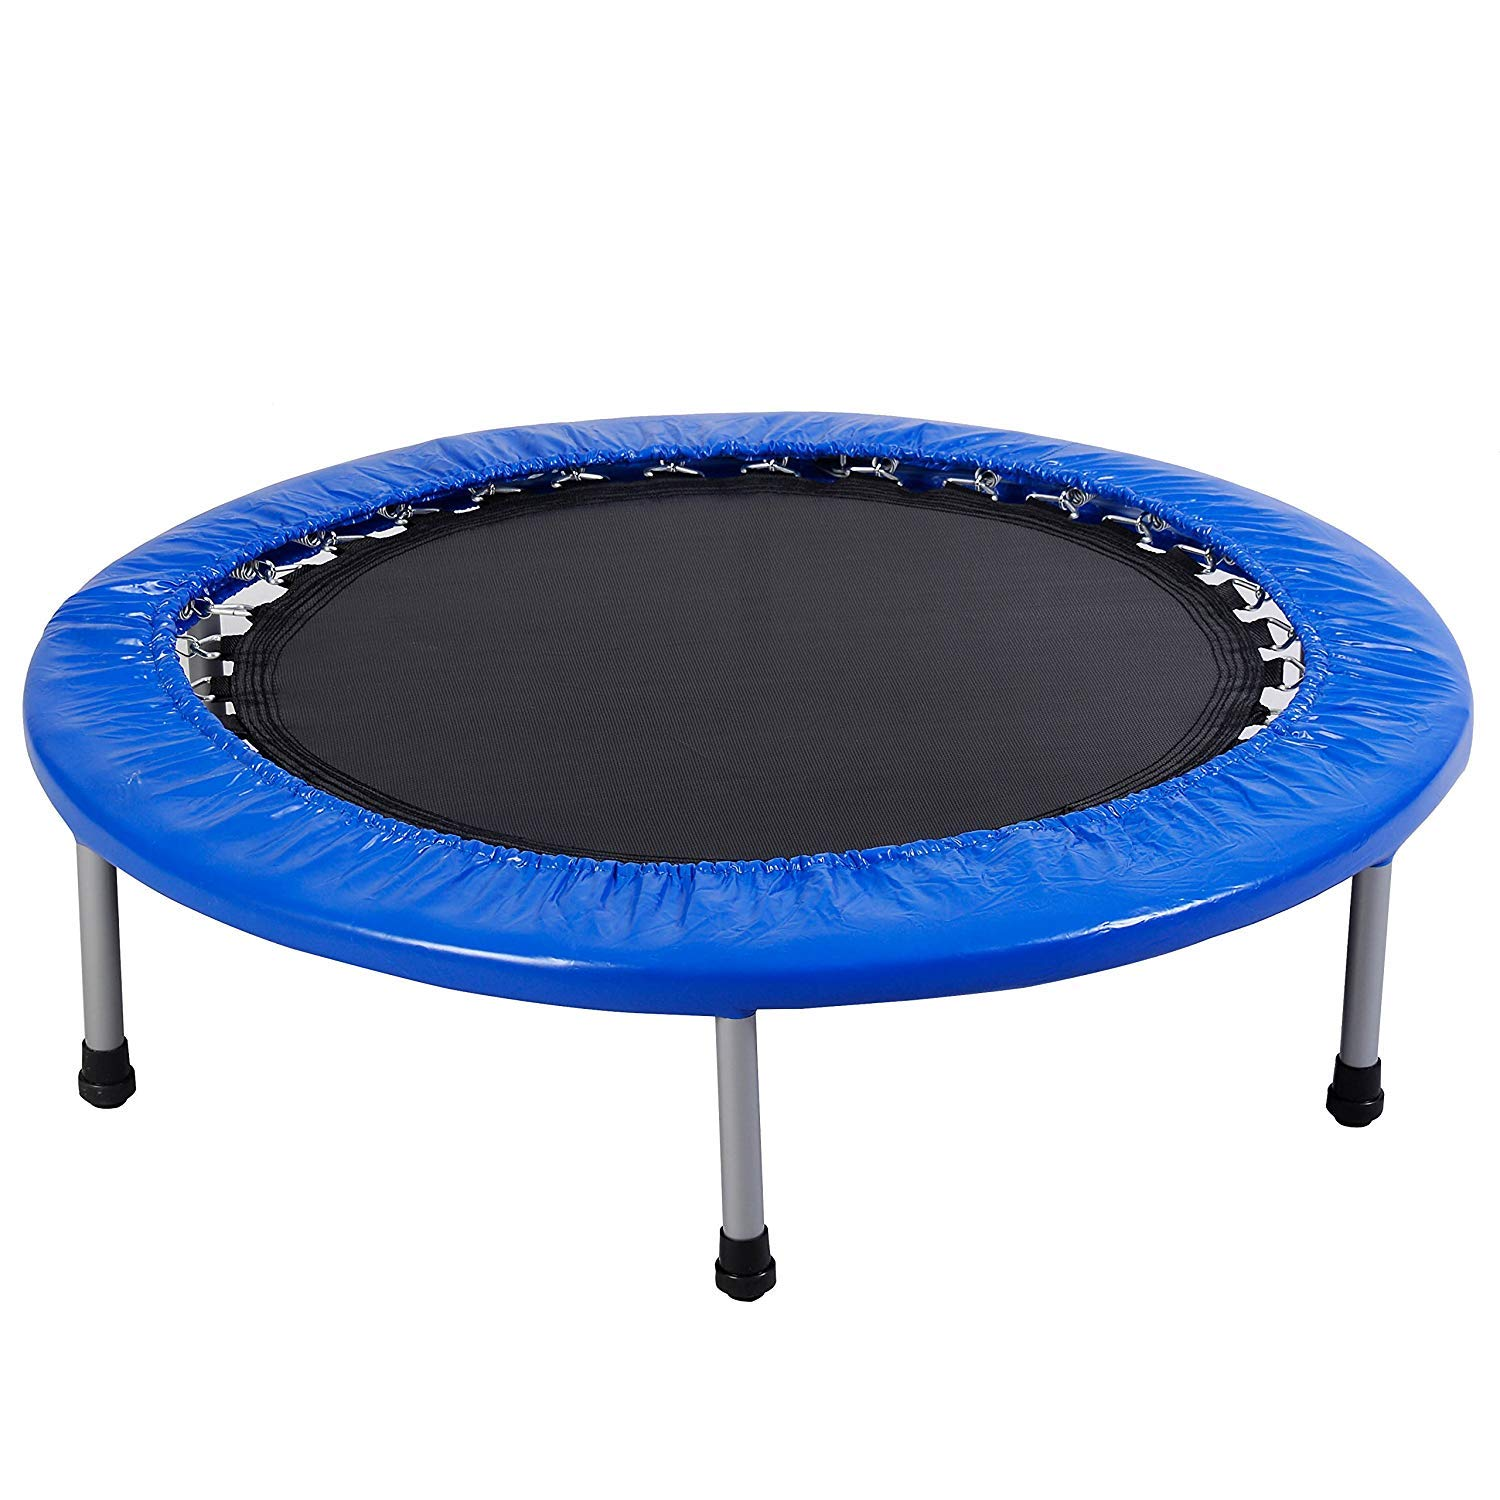 COSTWAY 38'' Mini Band Trampoline Safe Elastic Exercise Workout W/ Padding & Springs, Silver Steel/Blue/Black